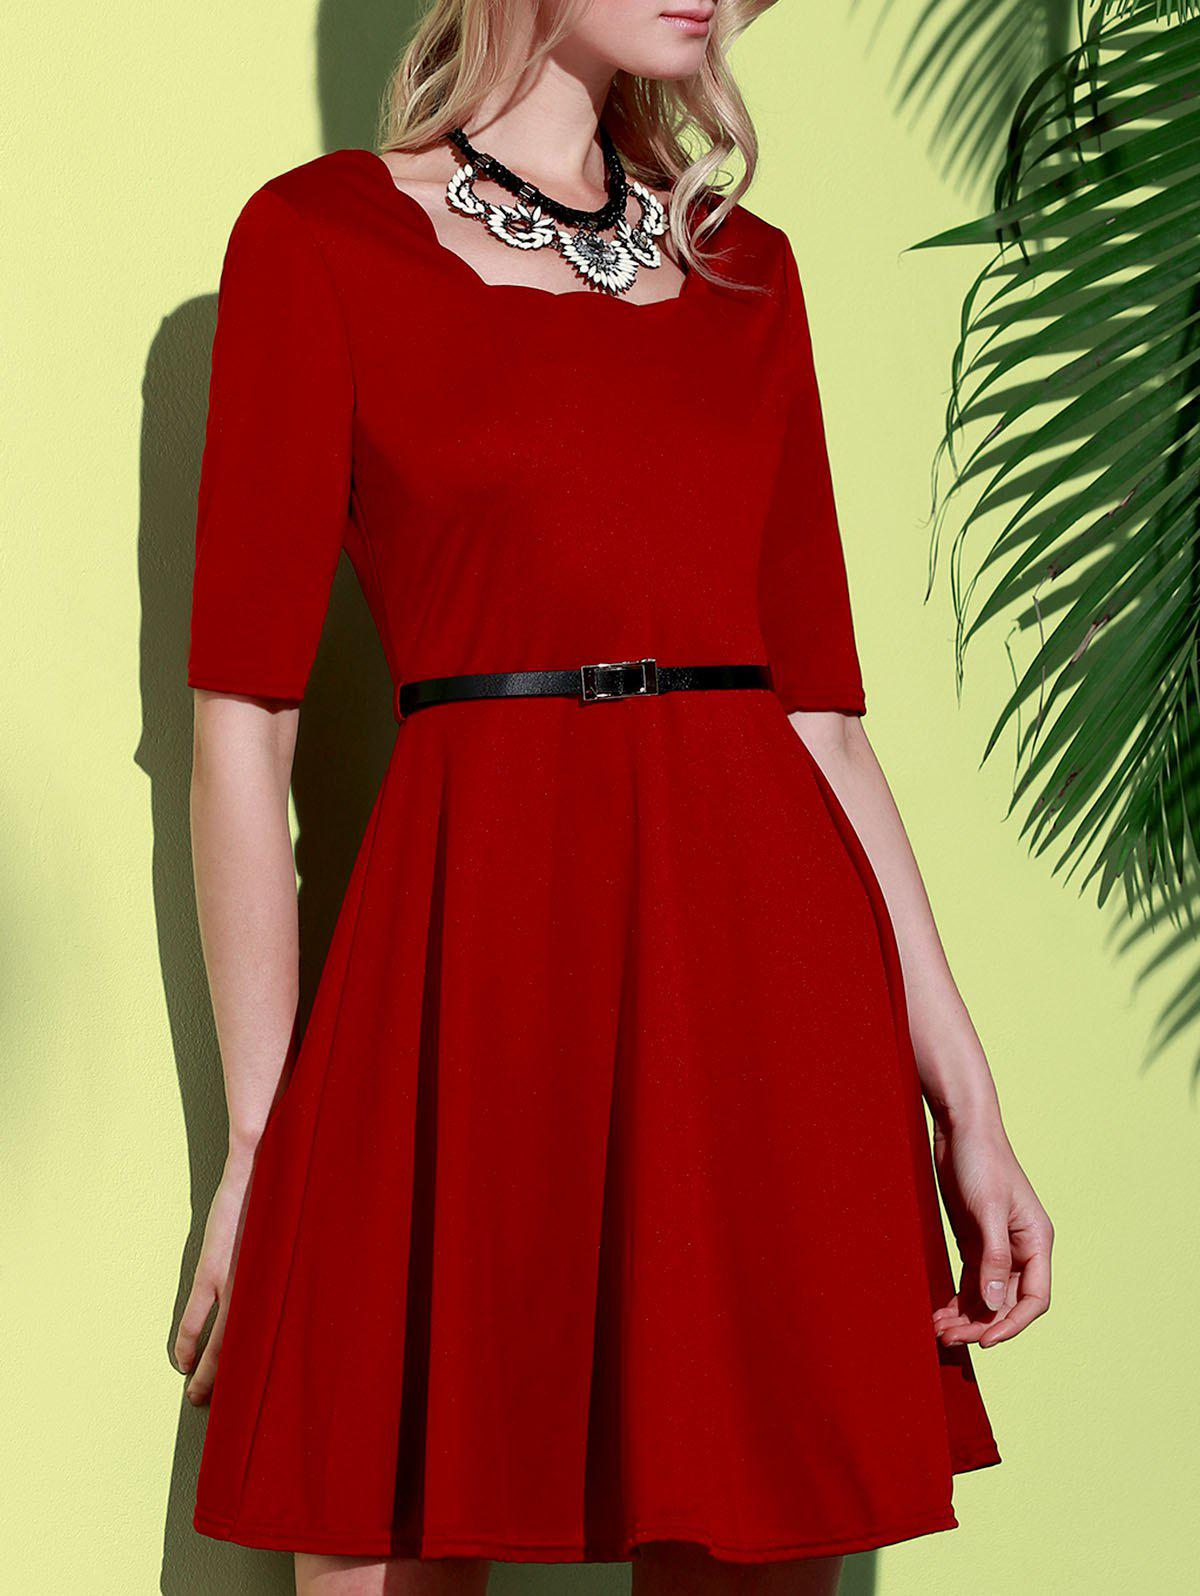 Stylish Square Neck Half Sleeve Pure Color Womens A-Line DressWOMEN<br><br>Size: L; Color: WINE RED; Style: Cute; Material: Polyester; Silhouette: A-Line; Dresses Length: Mini; Neckline: Square Collar; Sleeve Length: Half Sleeves; Pattern Type: Solid; With Belt: No; Season: Spring,Summer; Weight: 0.310kg; Package Contents: 1 x Dress;